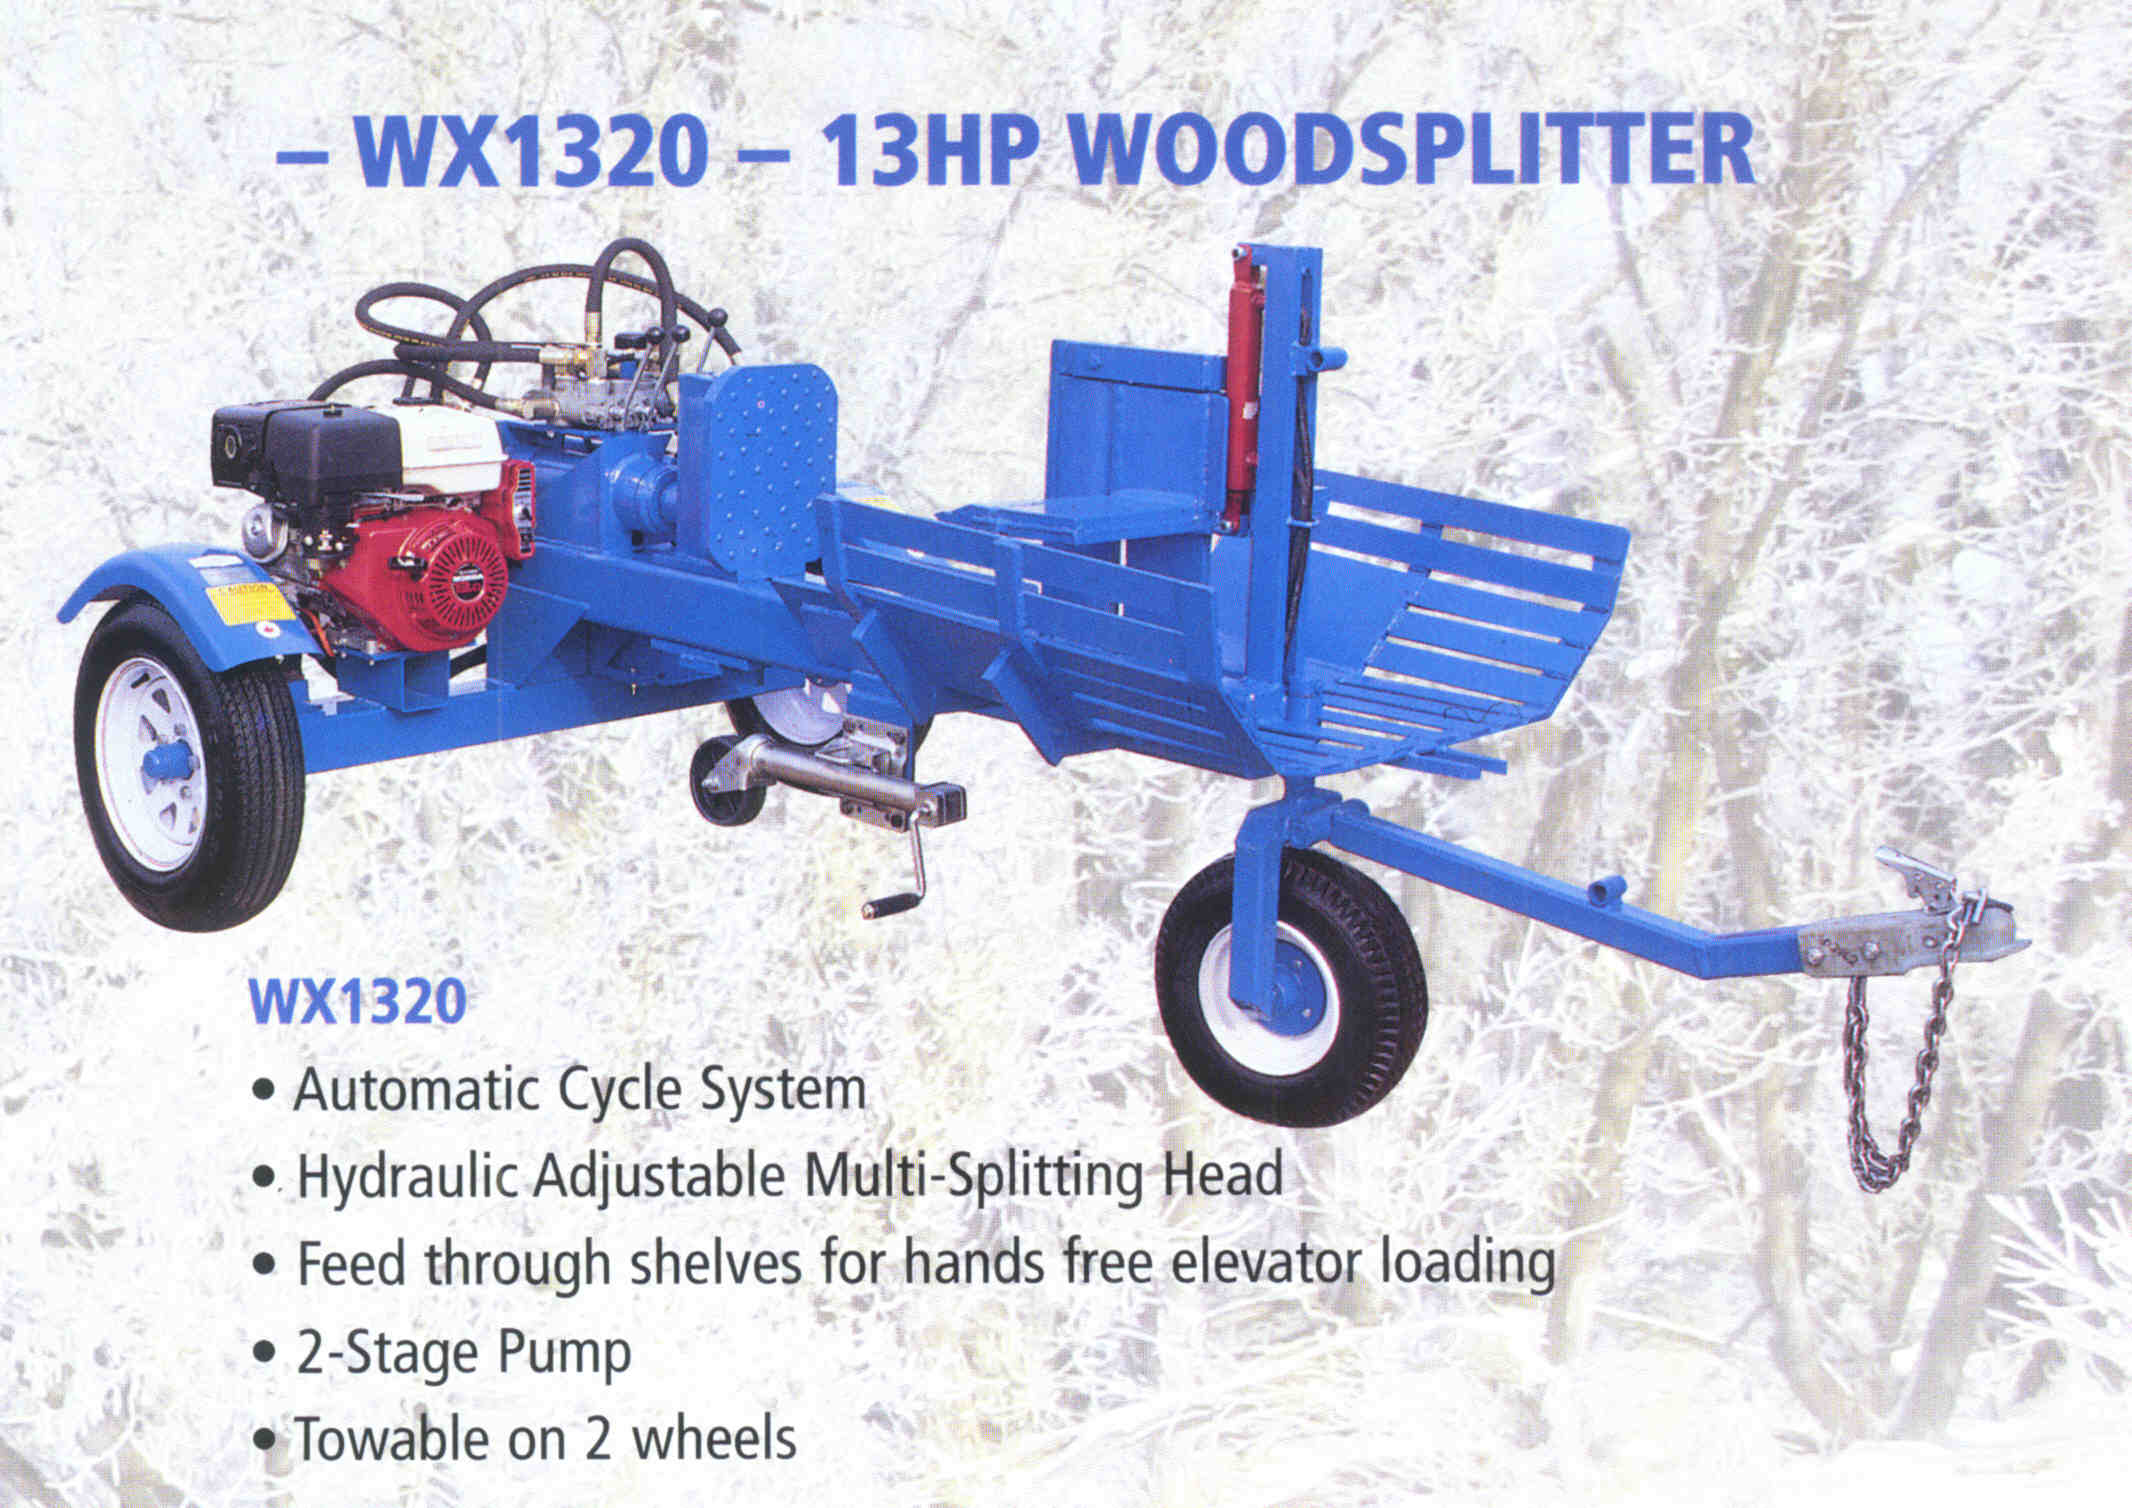 Trailer Mounted Logsplitter With 4-Way Wedge And Feed Through Shelves